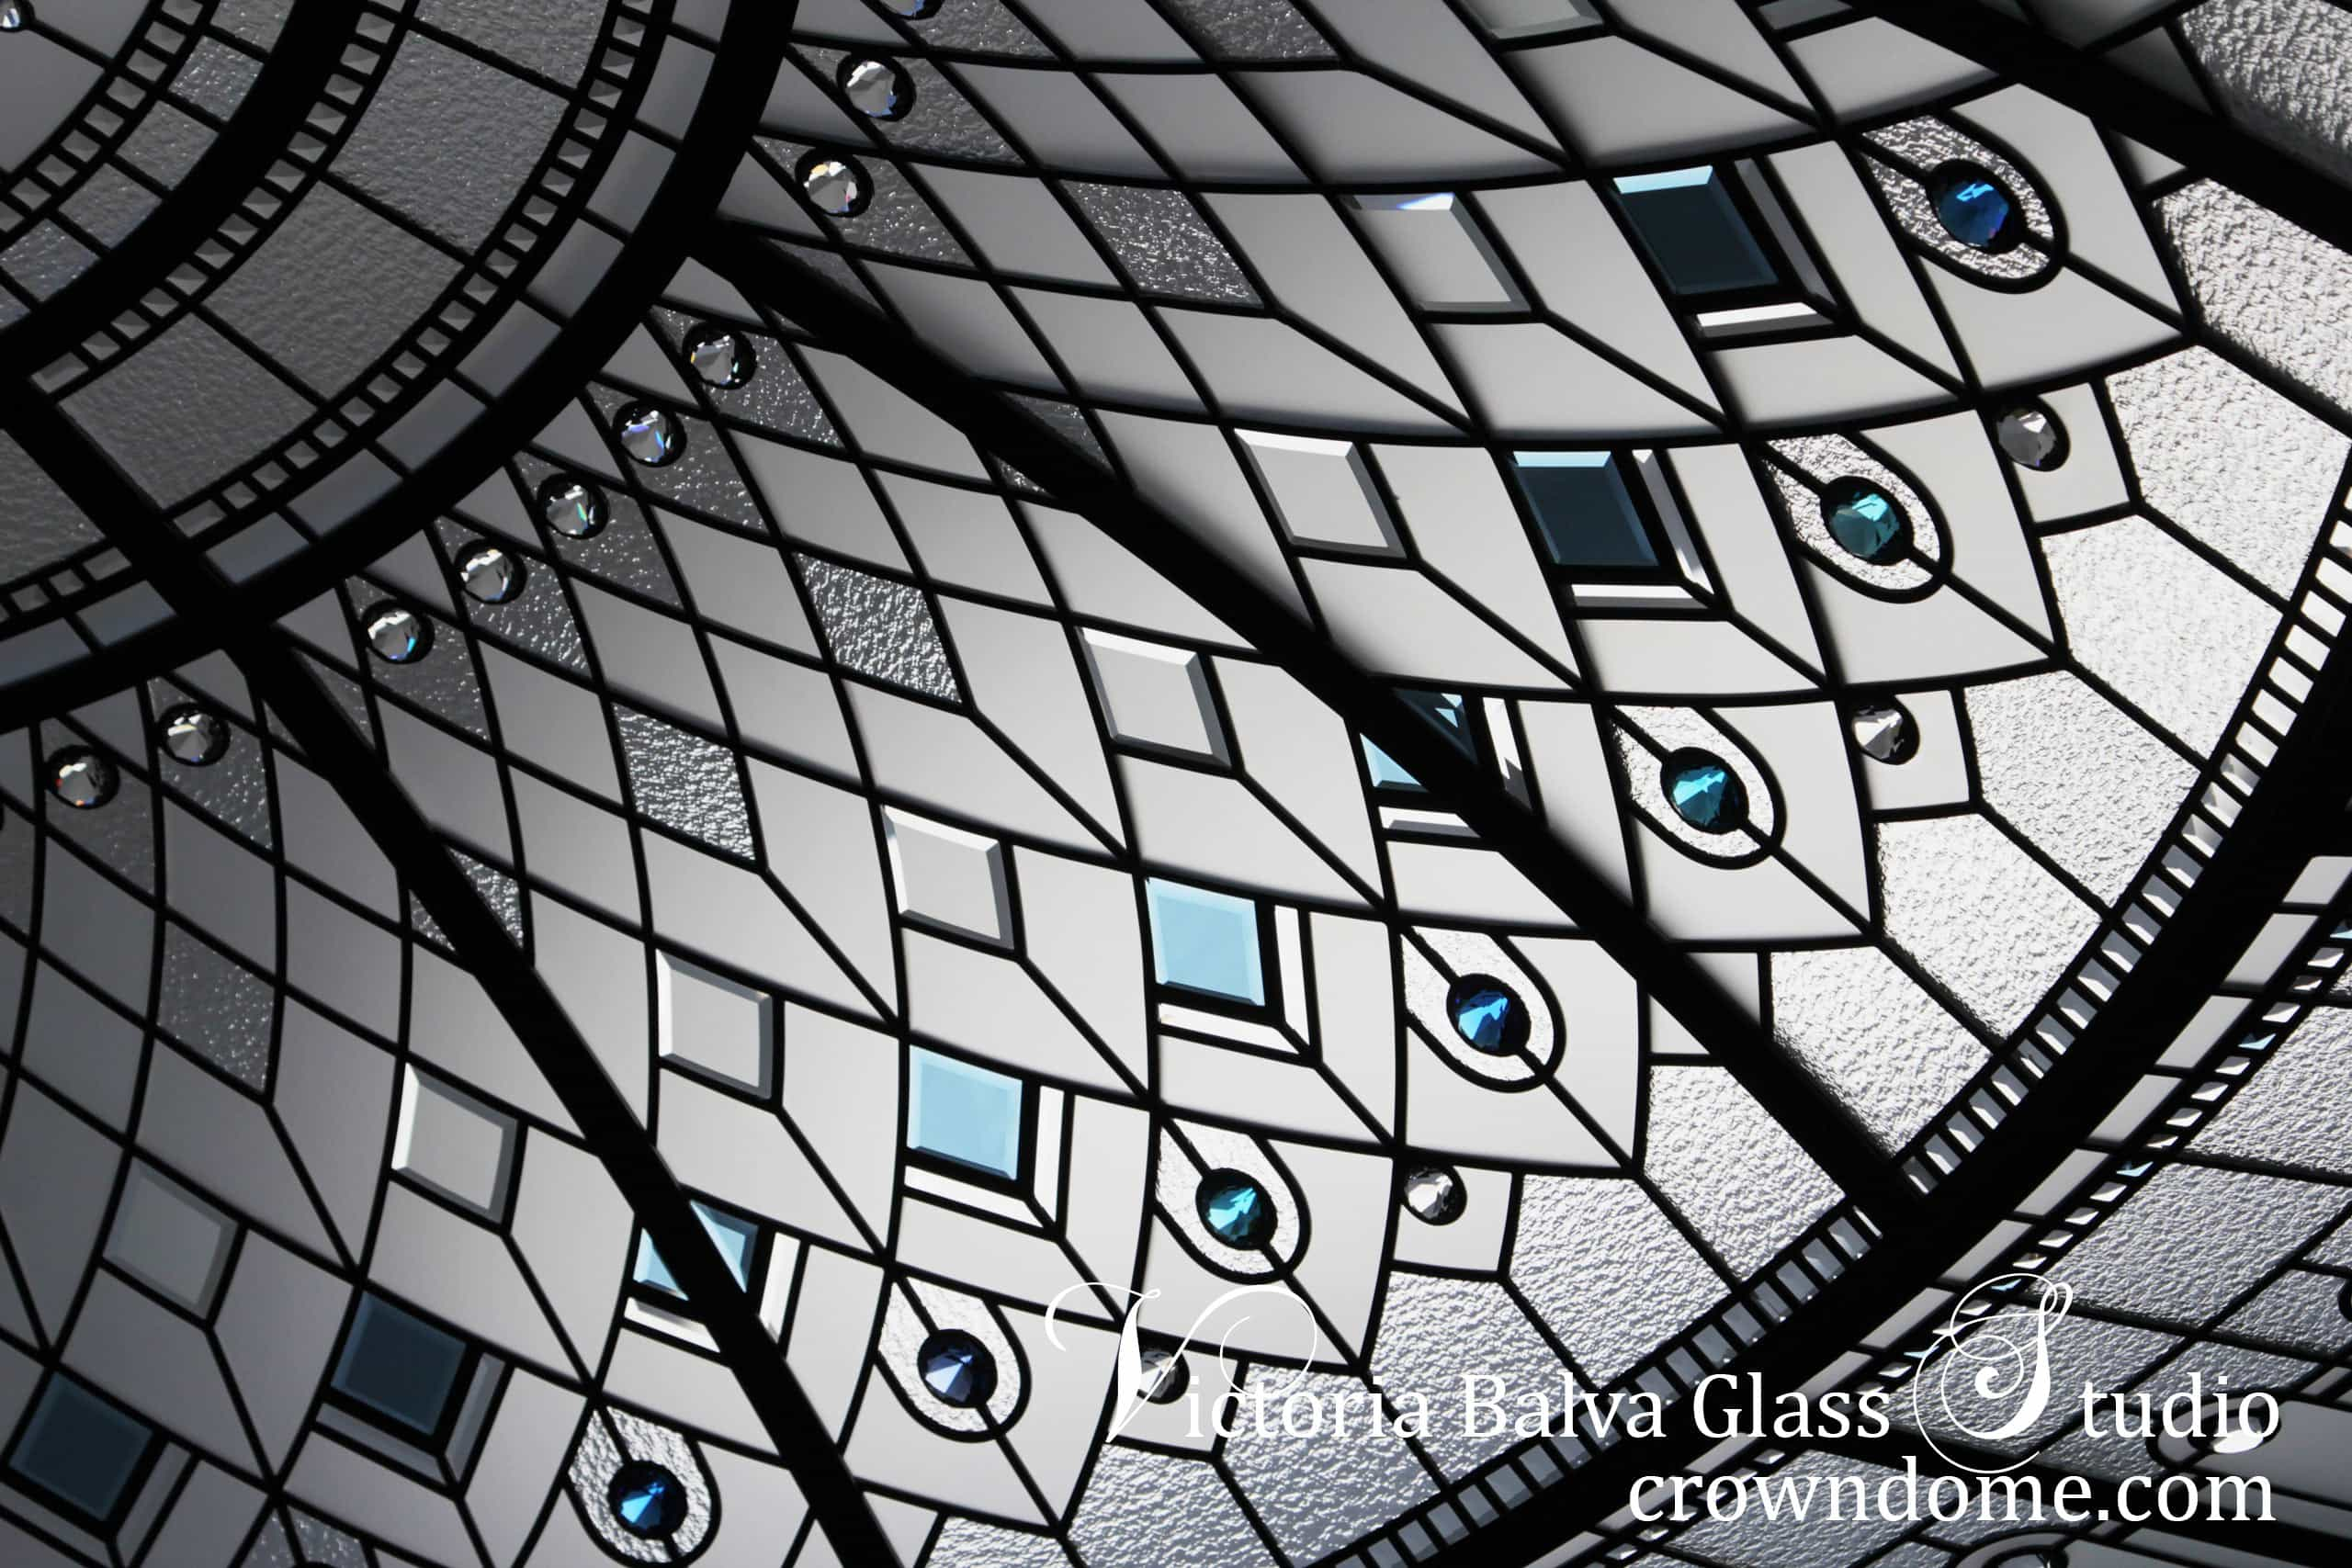 Stained leaded glass dome / octagon glass skylight in geometrical style with colored beveled glass and crystal jewels for a custom build residence decorative glass ceiling